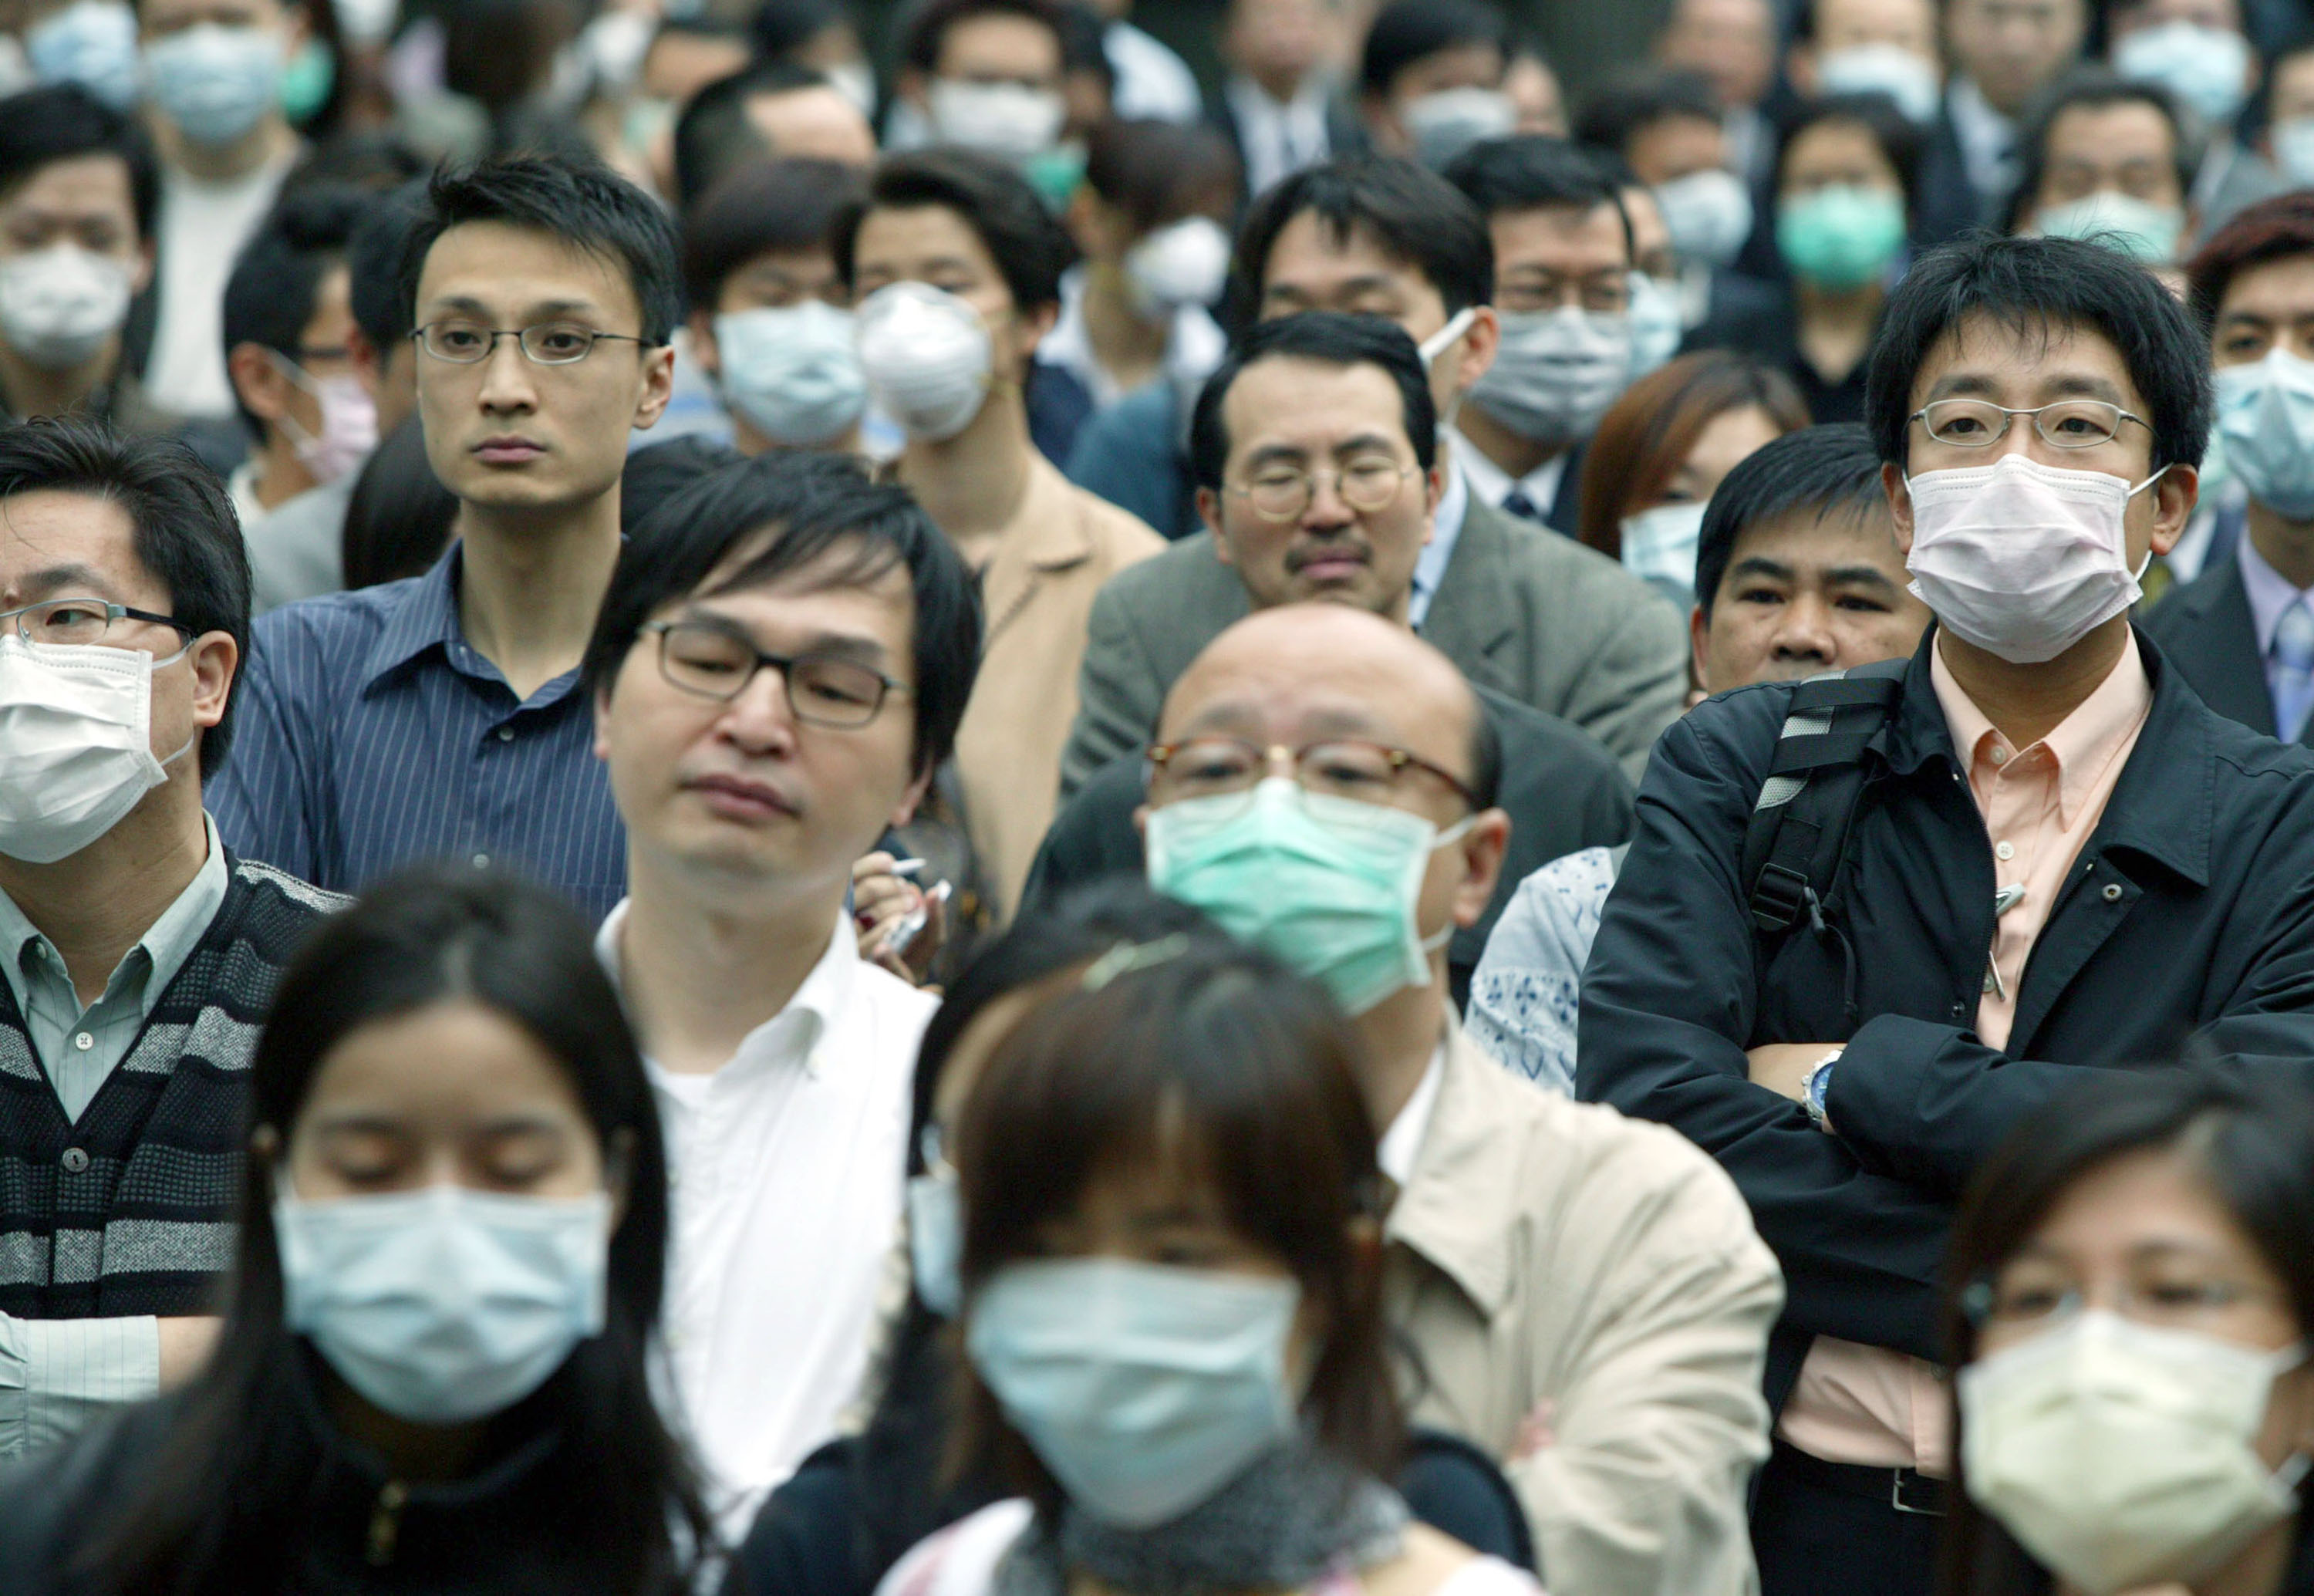 People wear masks to protect themselves against the Severe Acute Respiratory Syndrome (SARS) virus April 16, 2003 in Hong Kong. Christian Keenan/Getty Images